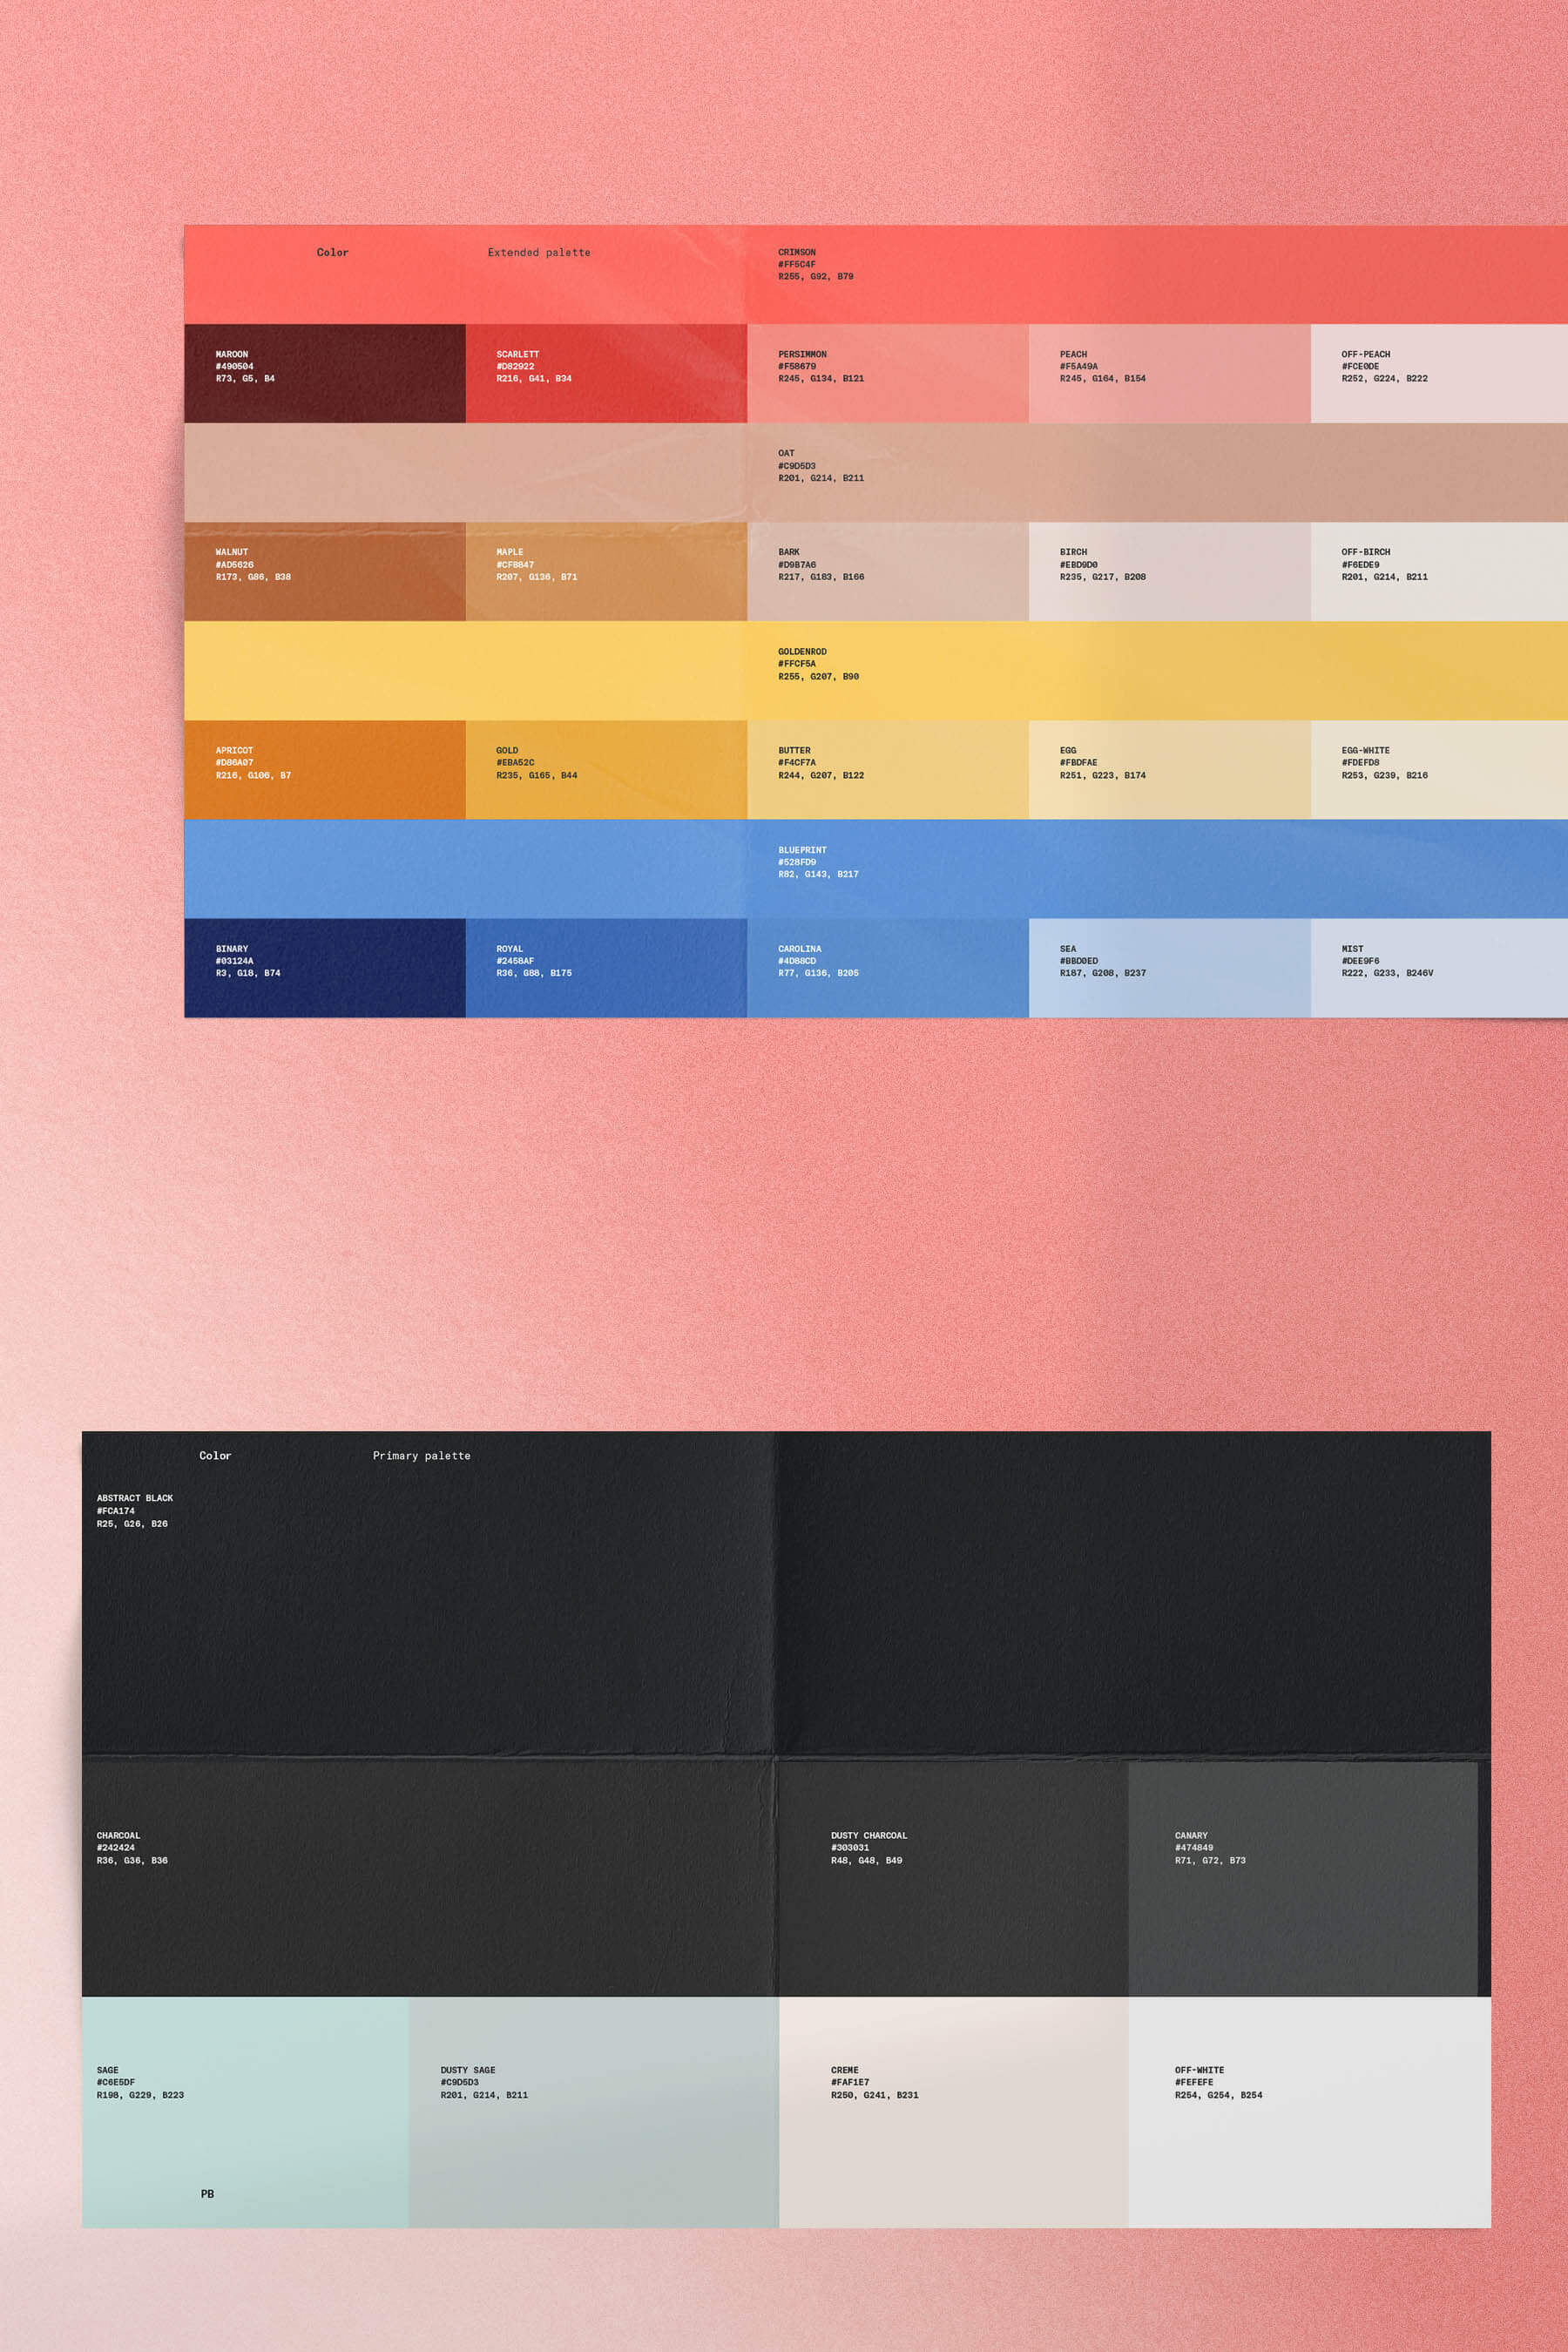 Abstract brand guide, featuring extended color palettes and main color palettes.